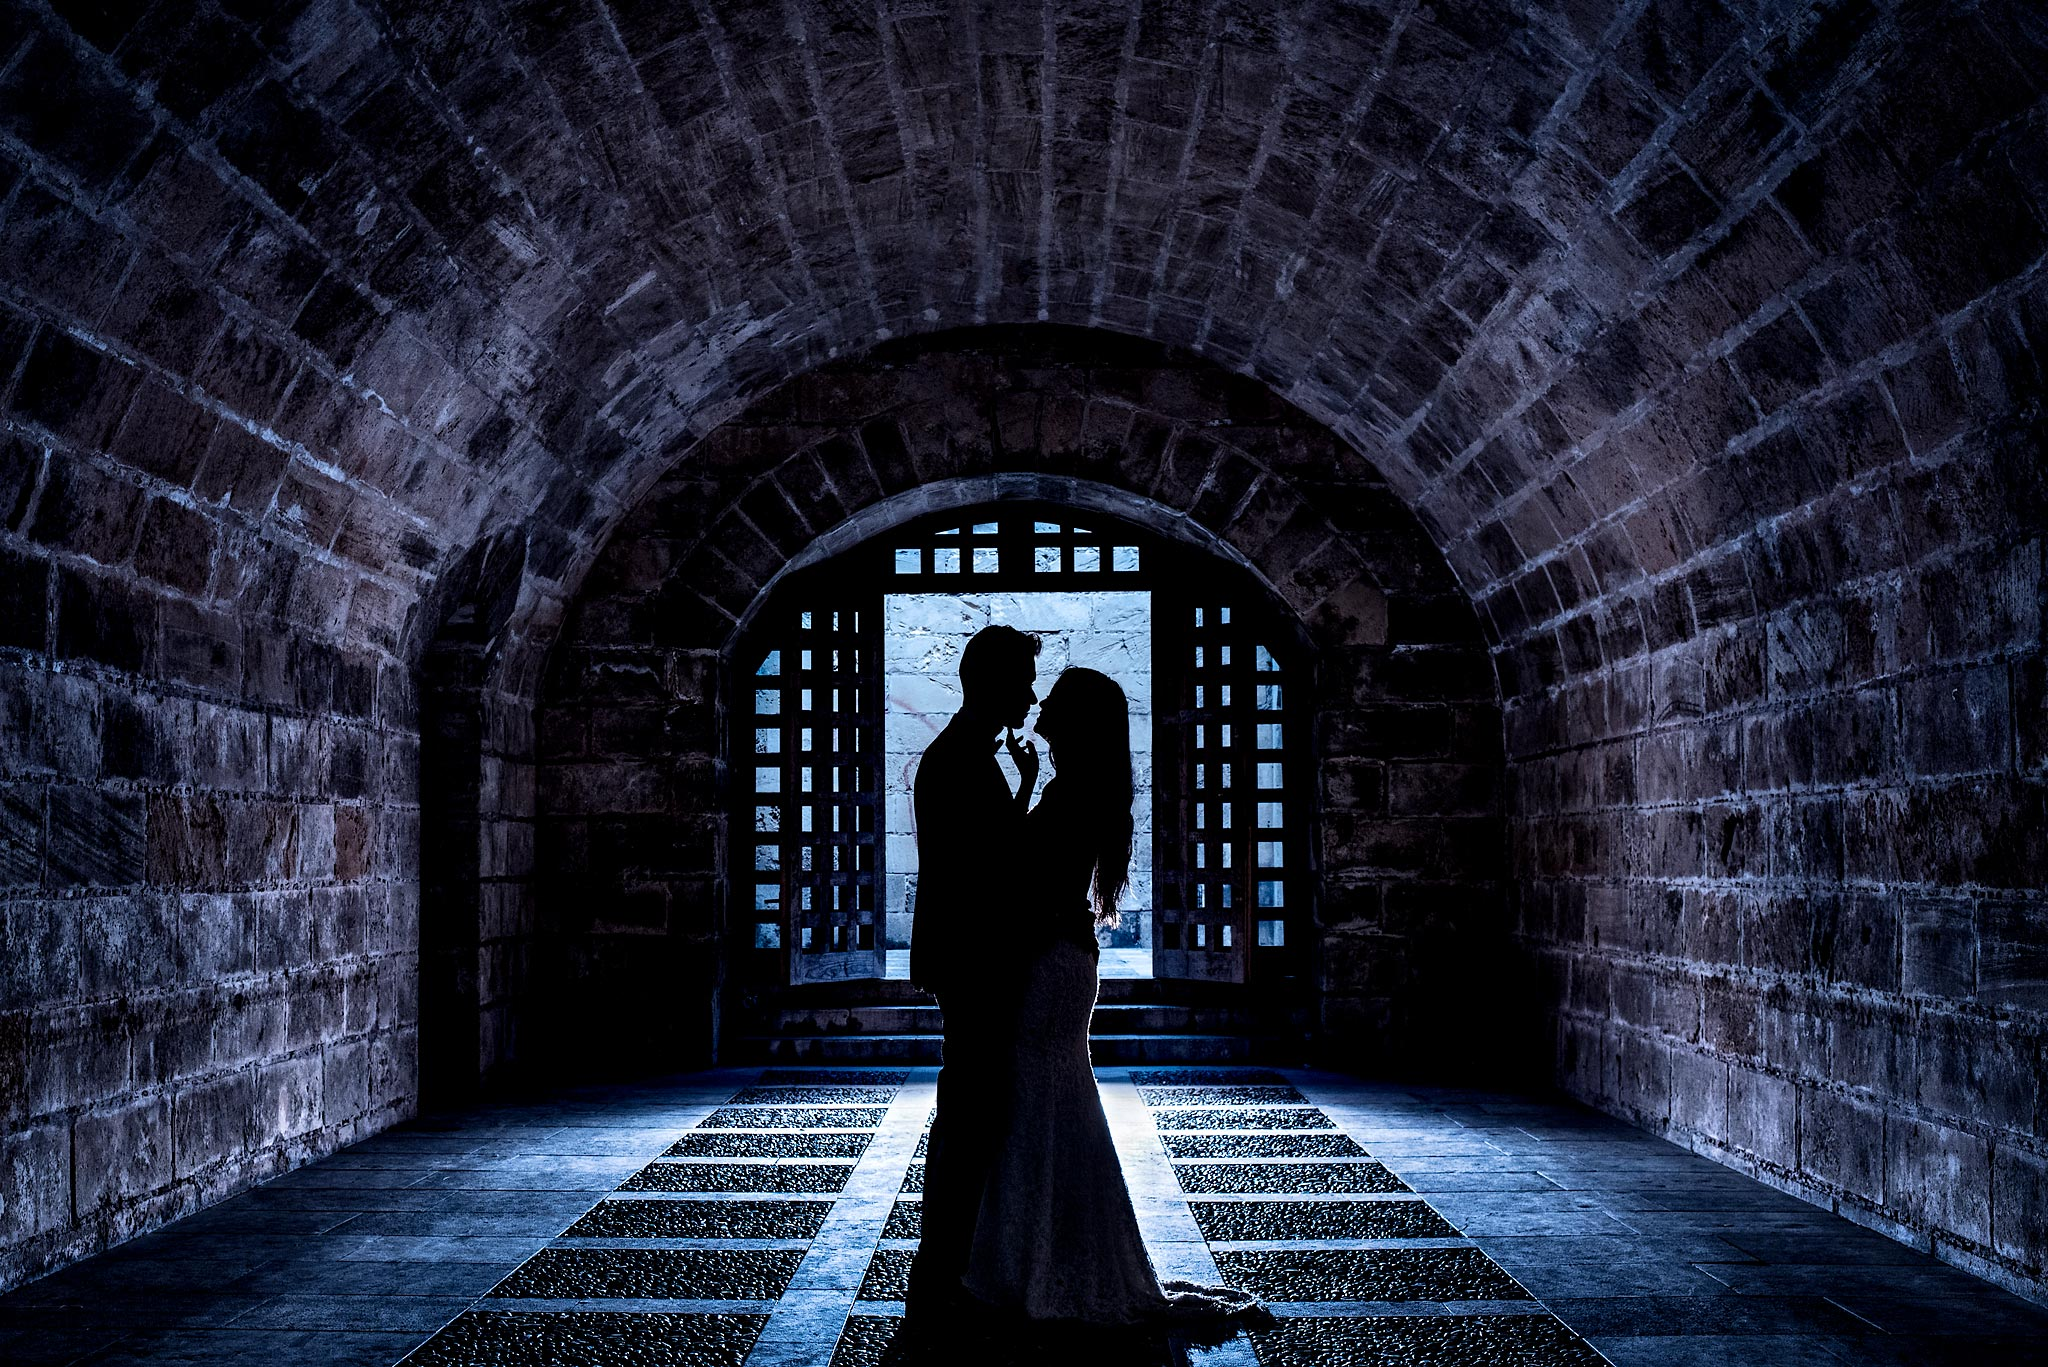 bride and groom silhouetted in a cave of a Spanish castle